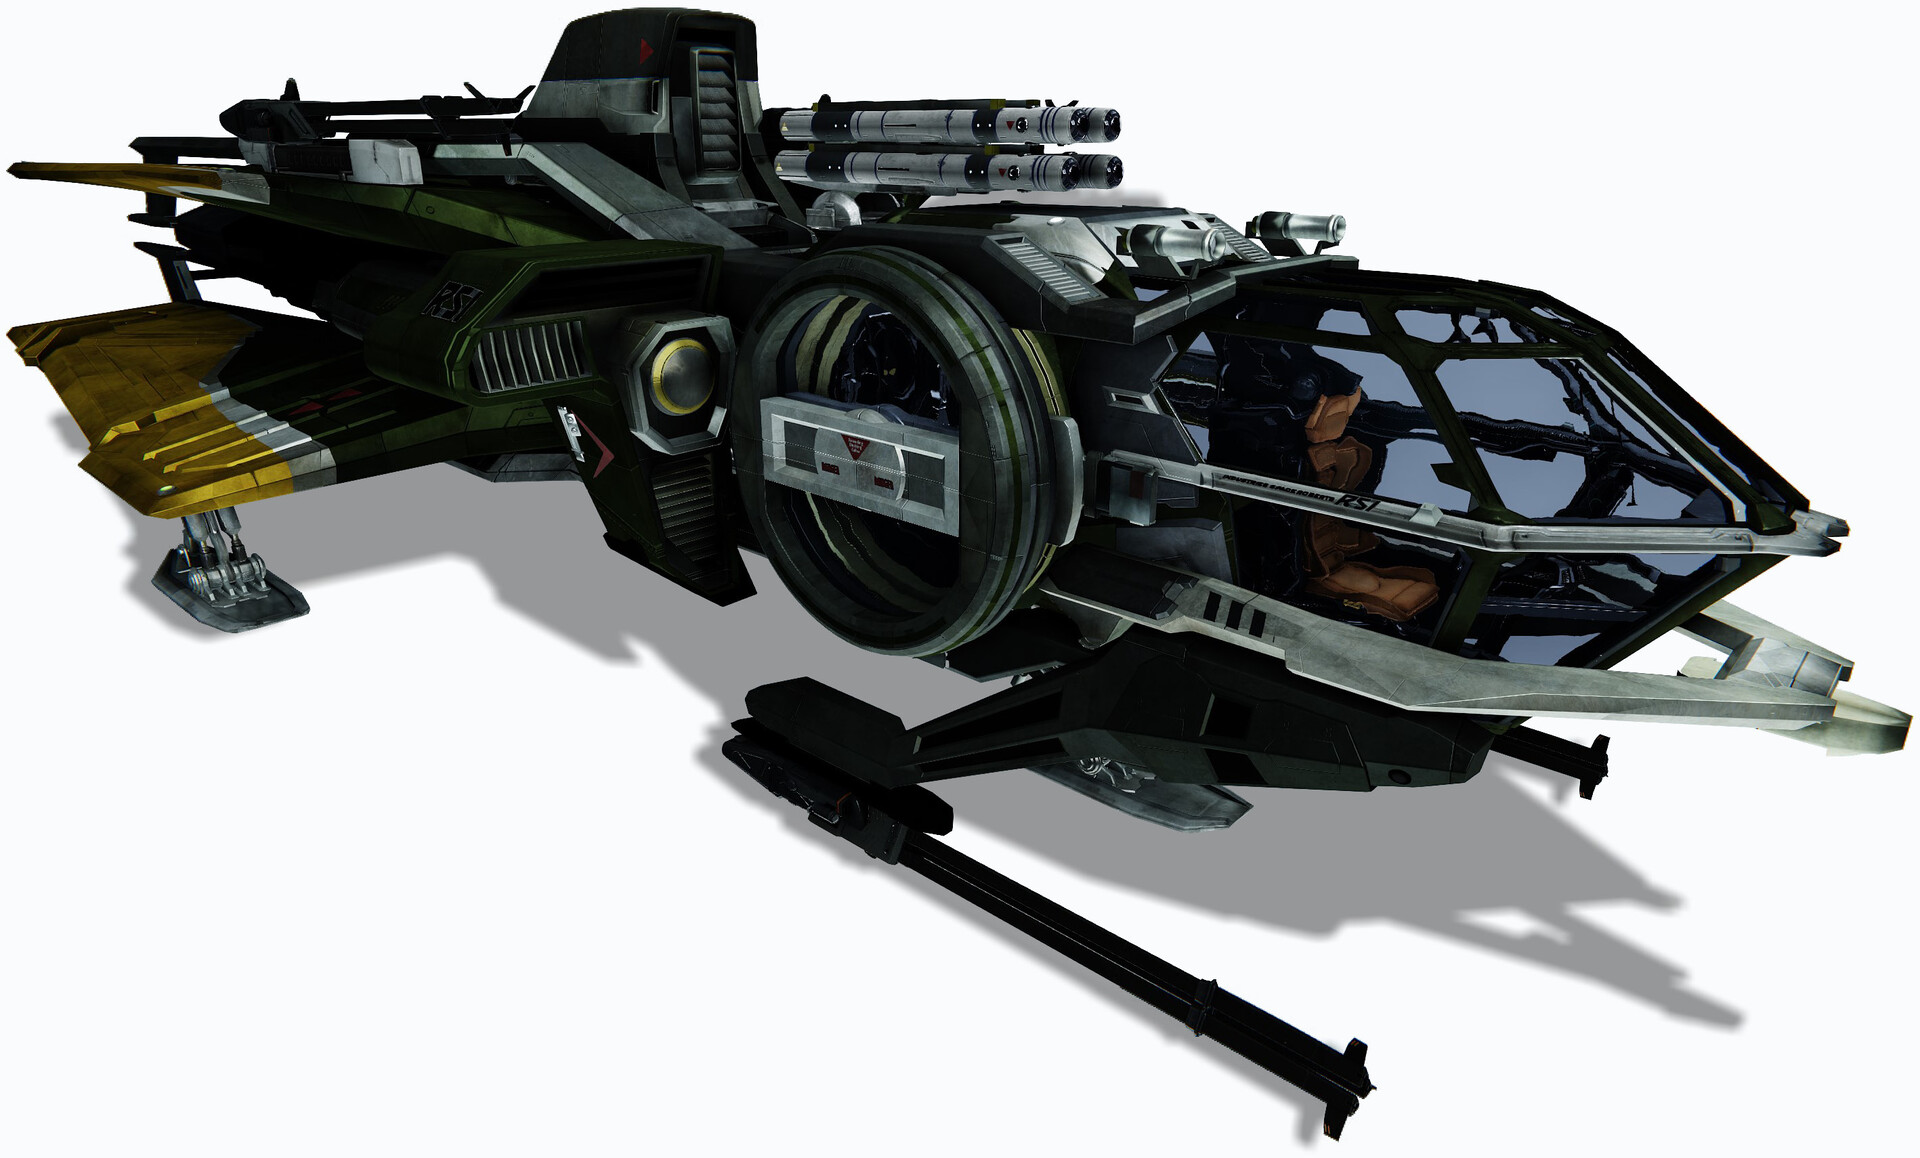 Reference Images for the in-game model from Star Citizen